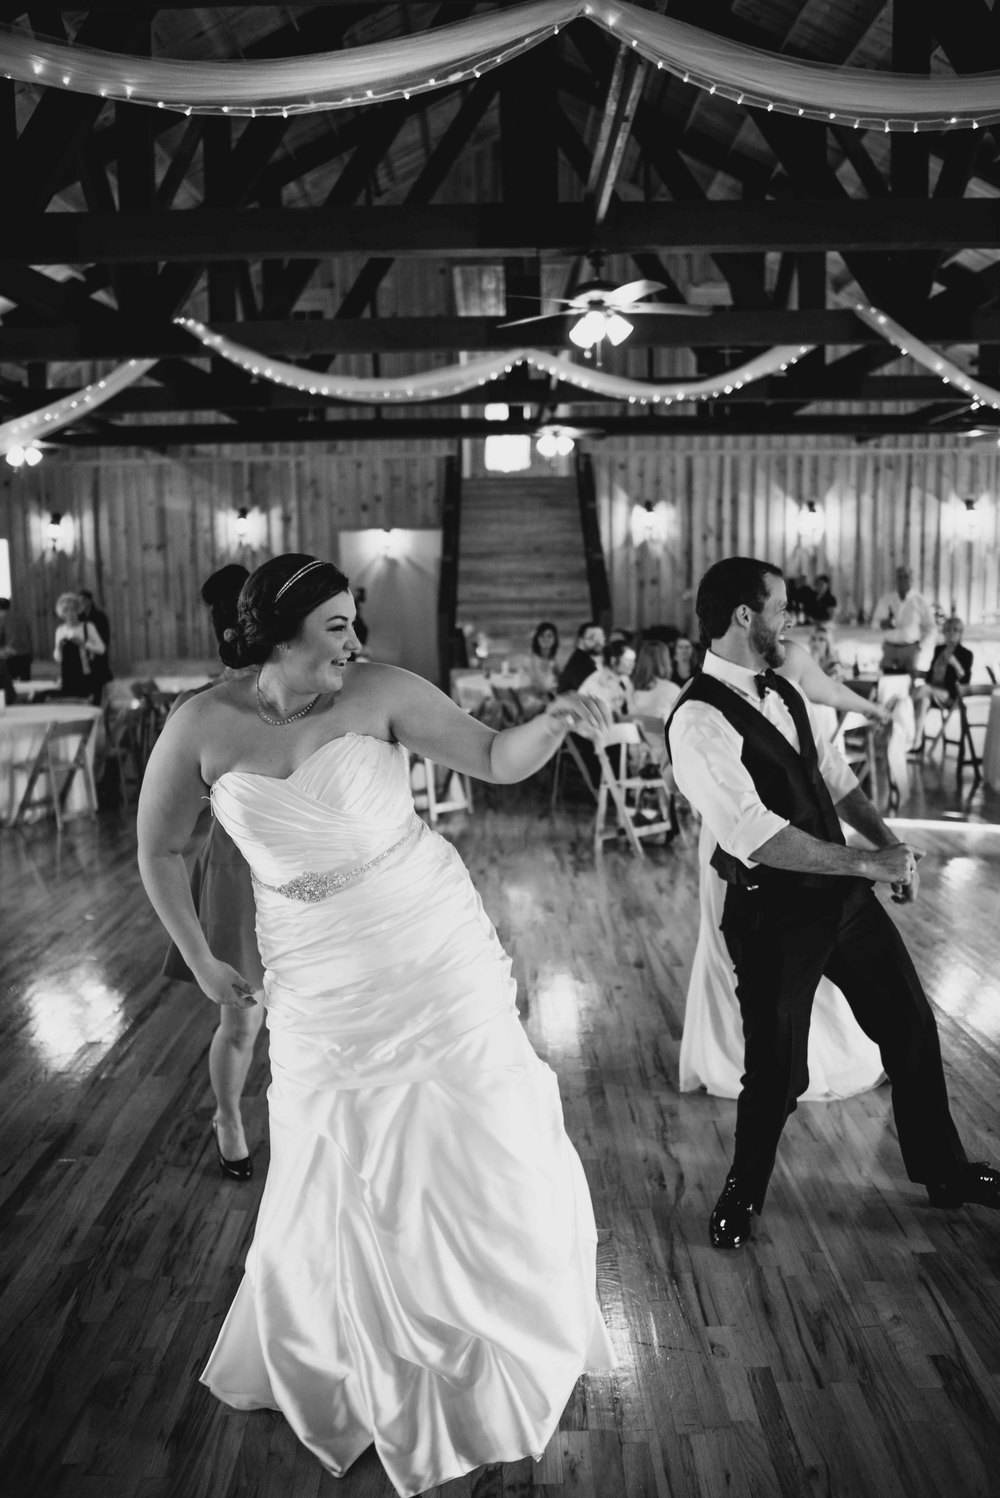 Dallas Wedding - Heritage Springs - Katie and Dustin - Bride Dancing